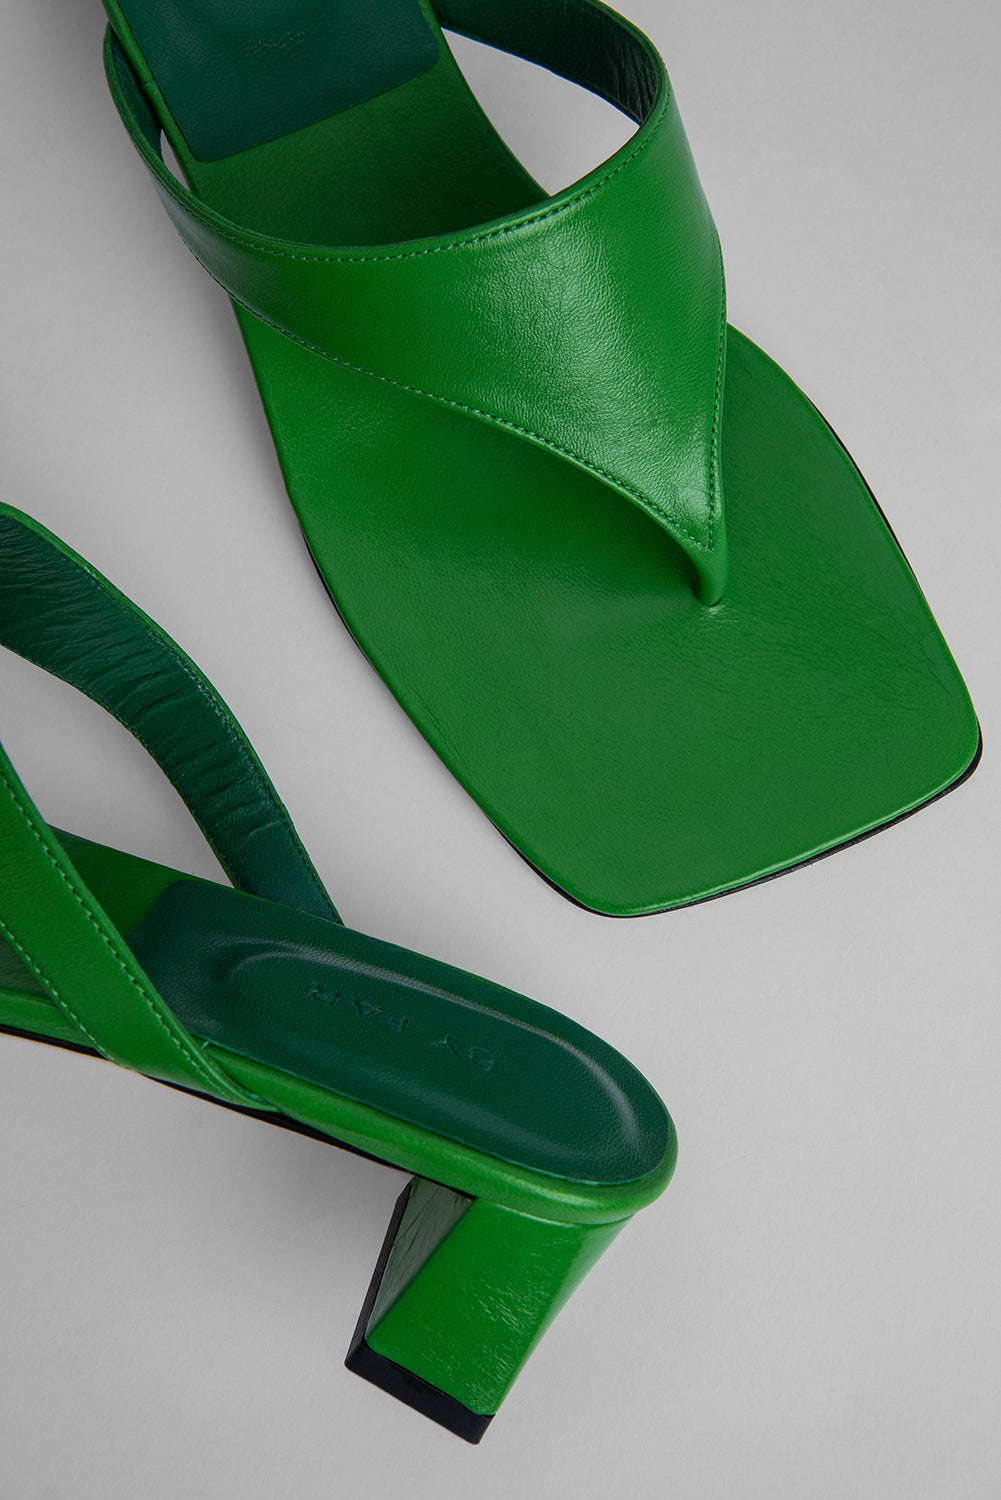 Shawn Emerald Gloss Leather